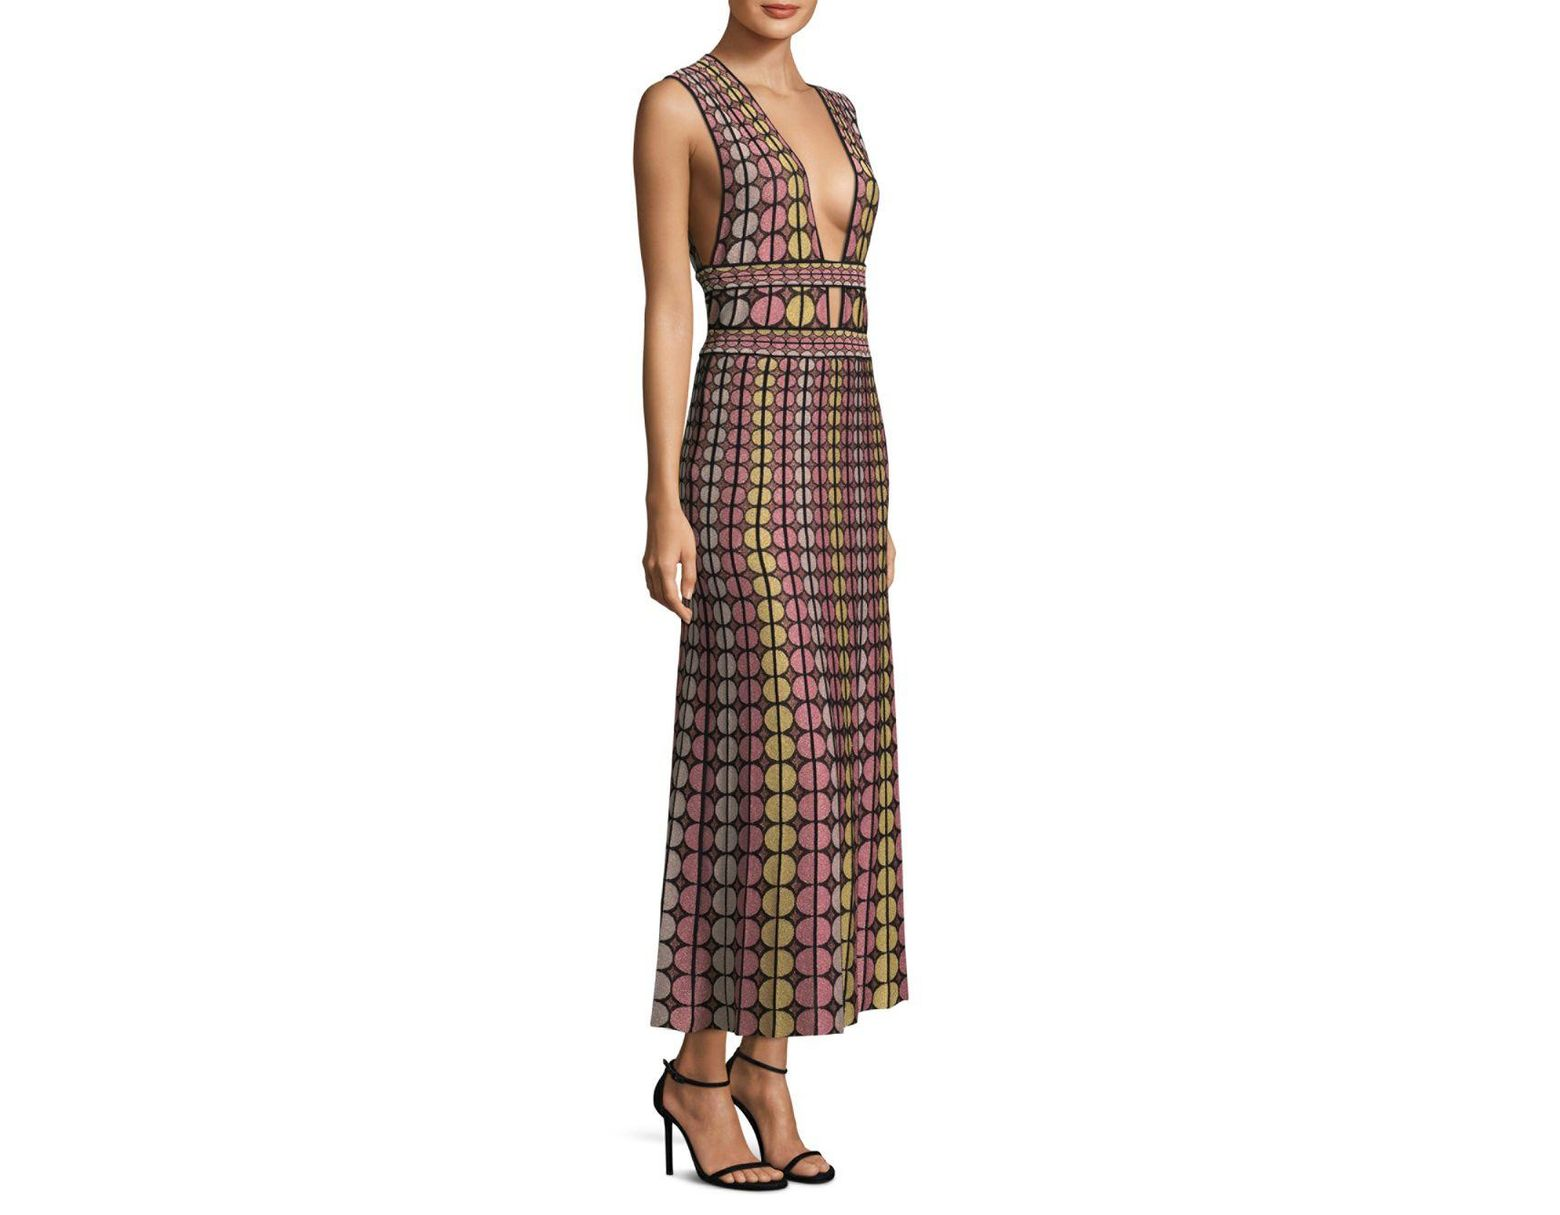 afddf5a38 M Missoni Knitted Round Deep V-neck Maxi Dress in Black - Save 24% - Lyst